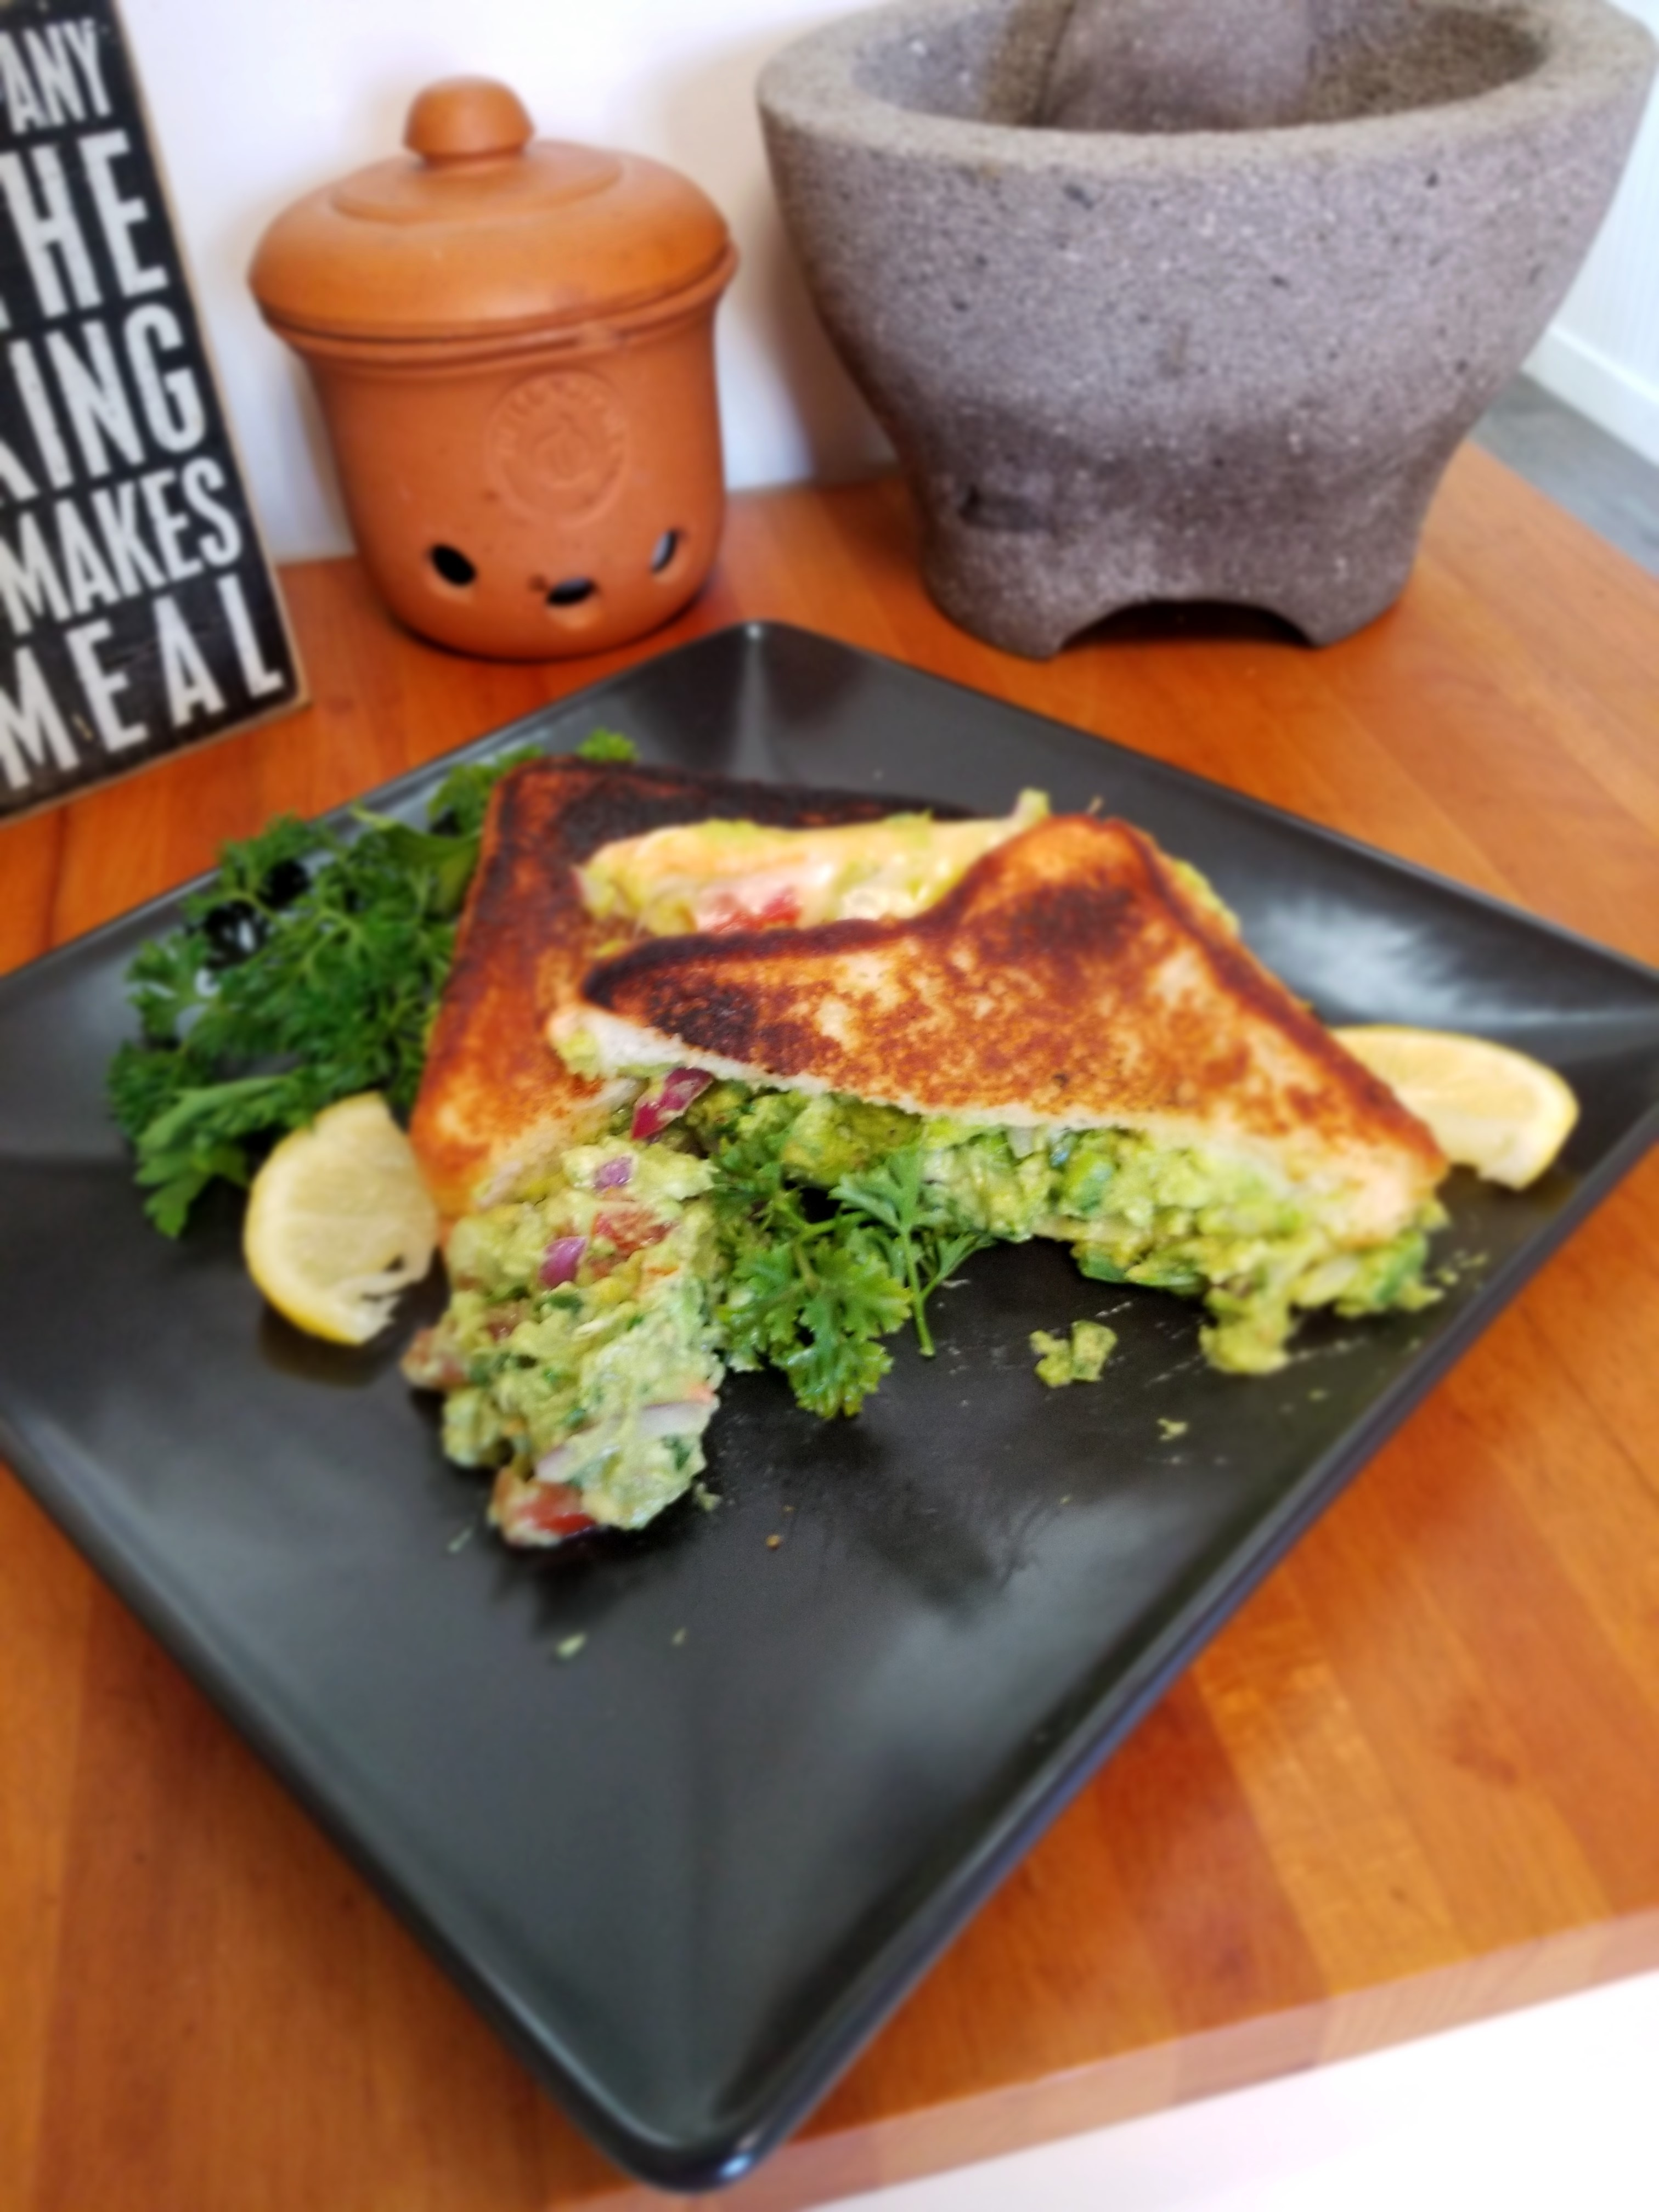 Texas Toast Guacamole Grilled Cheese Sandwich